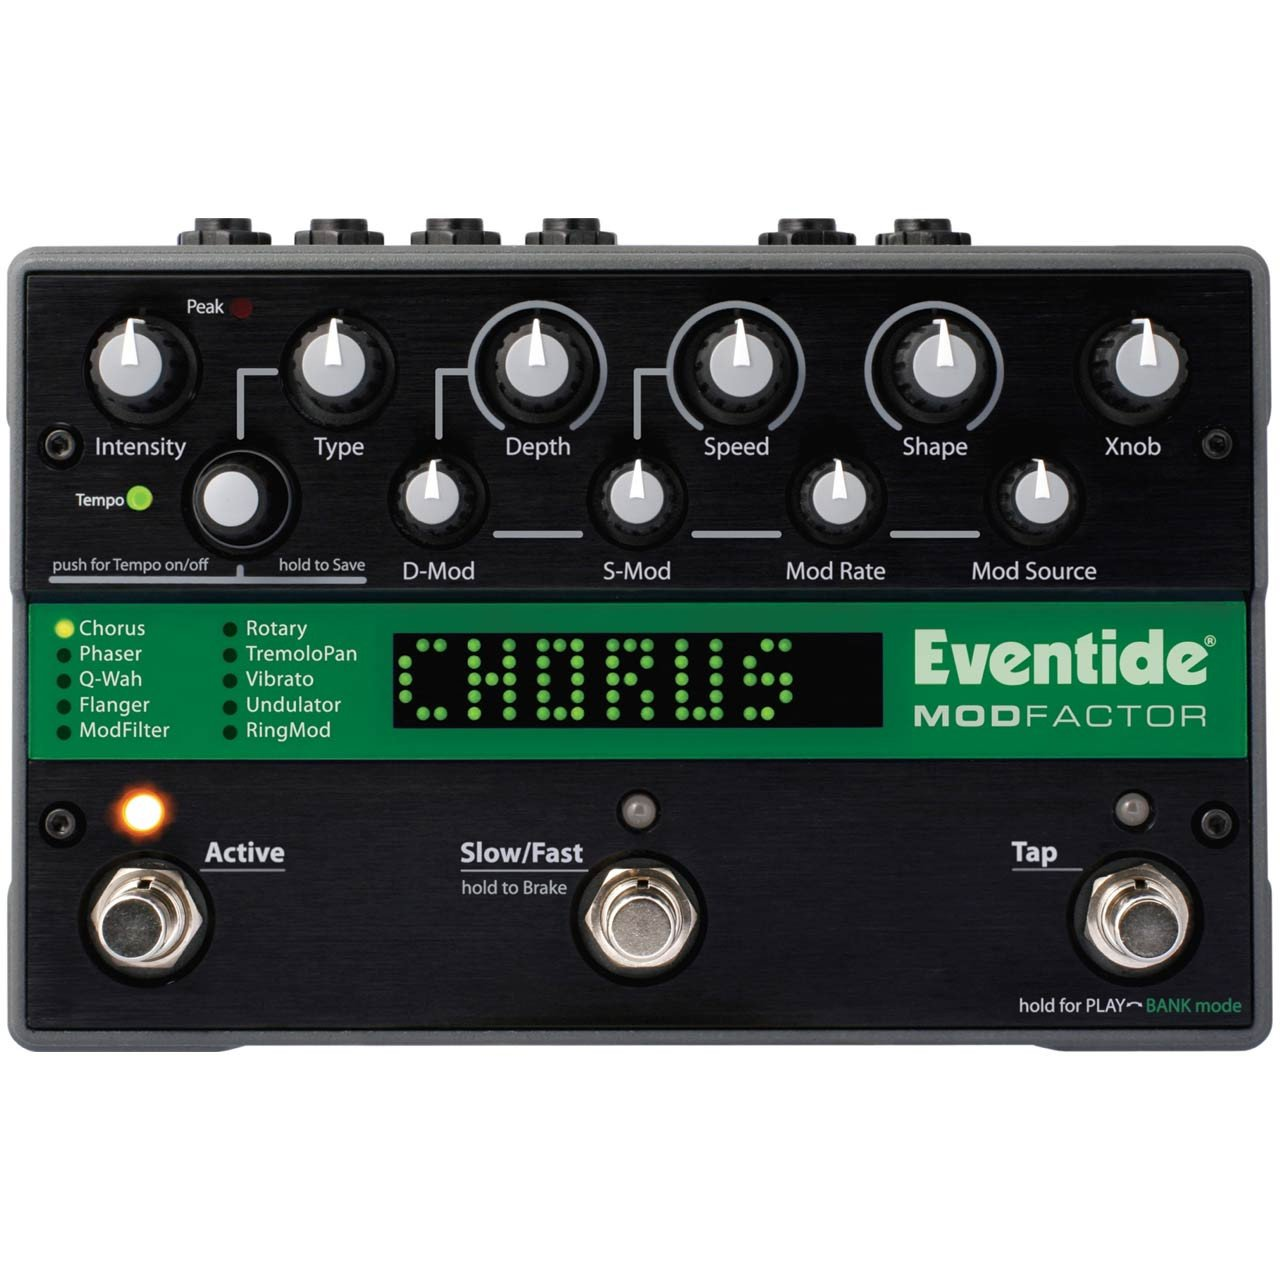 Pedals & Effects - Eventide ModFactor - Modulation Effects Pedal